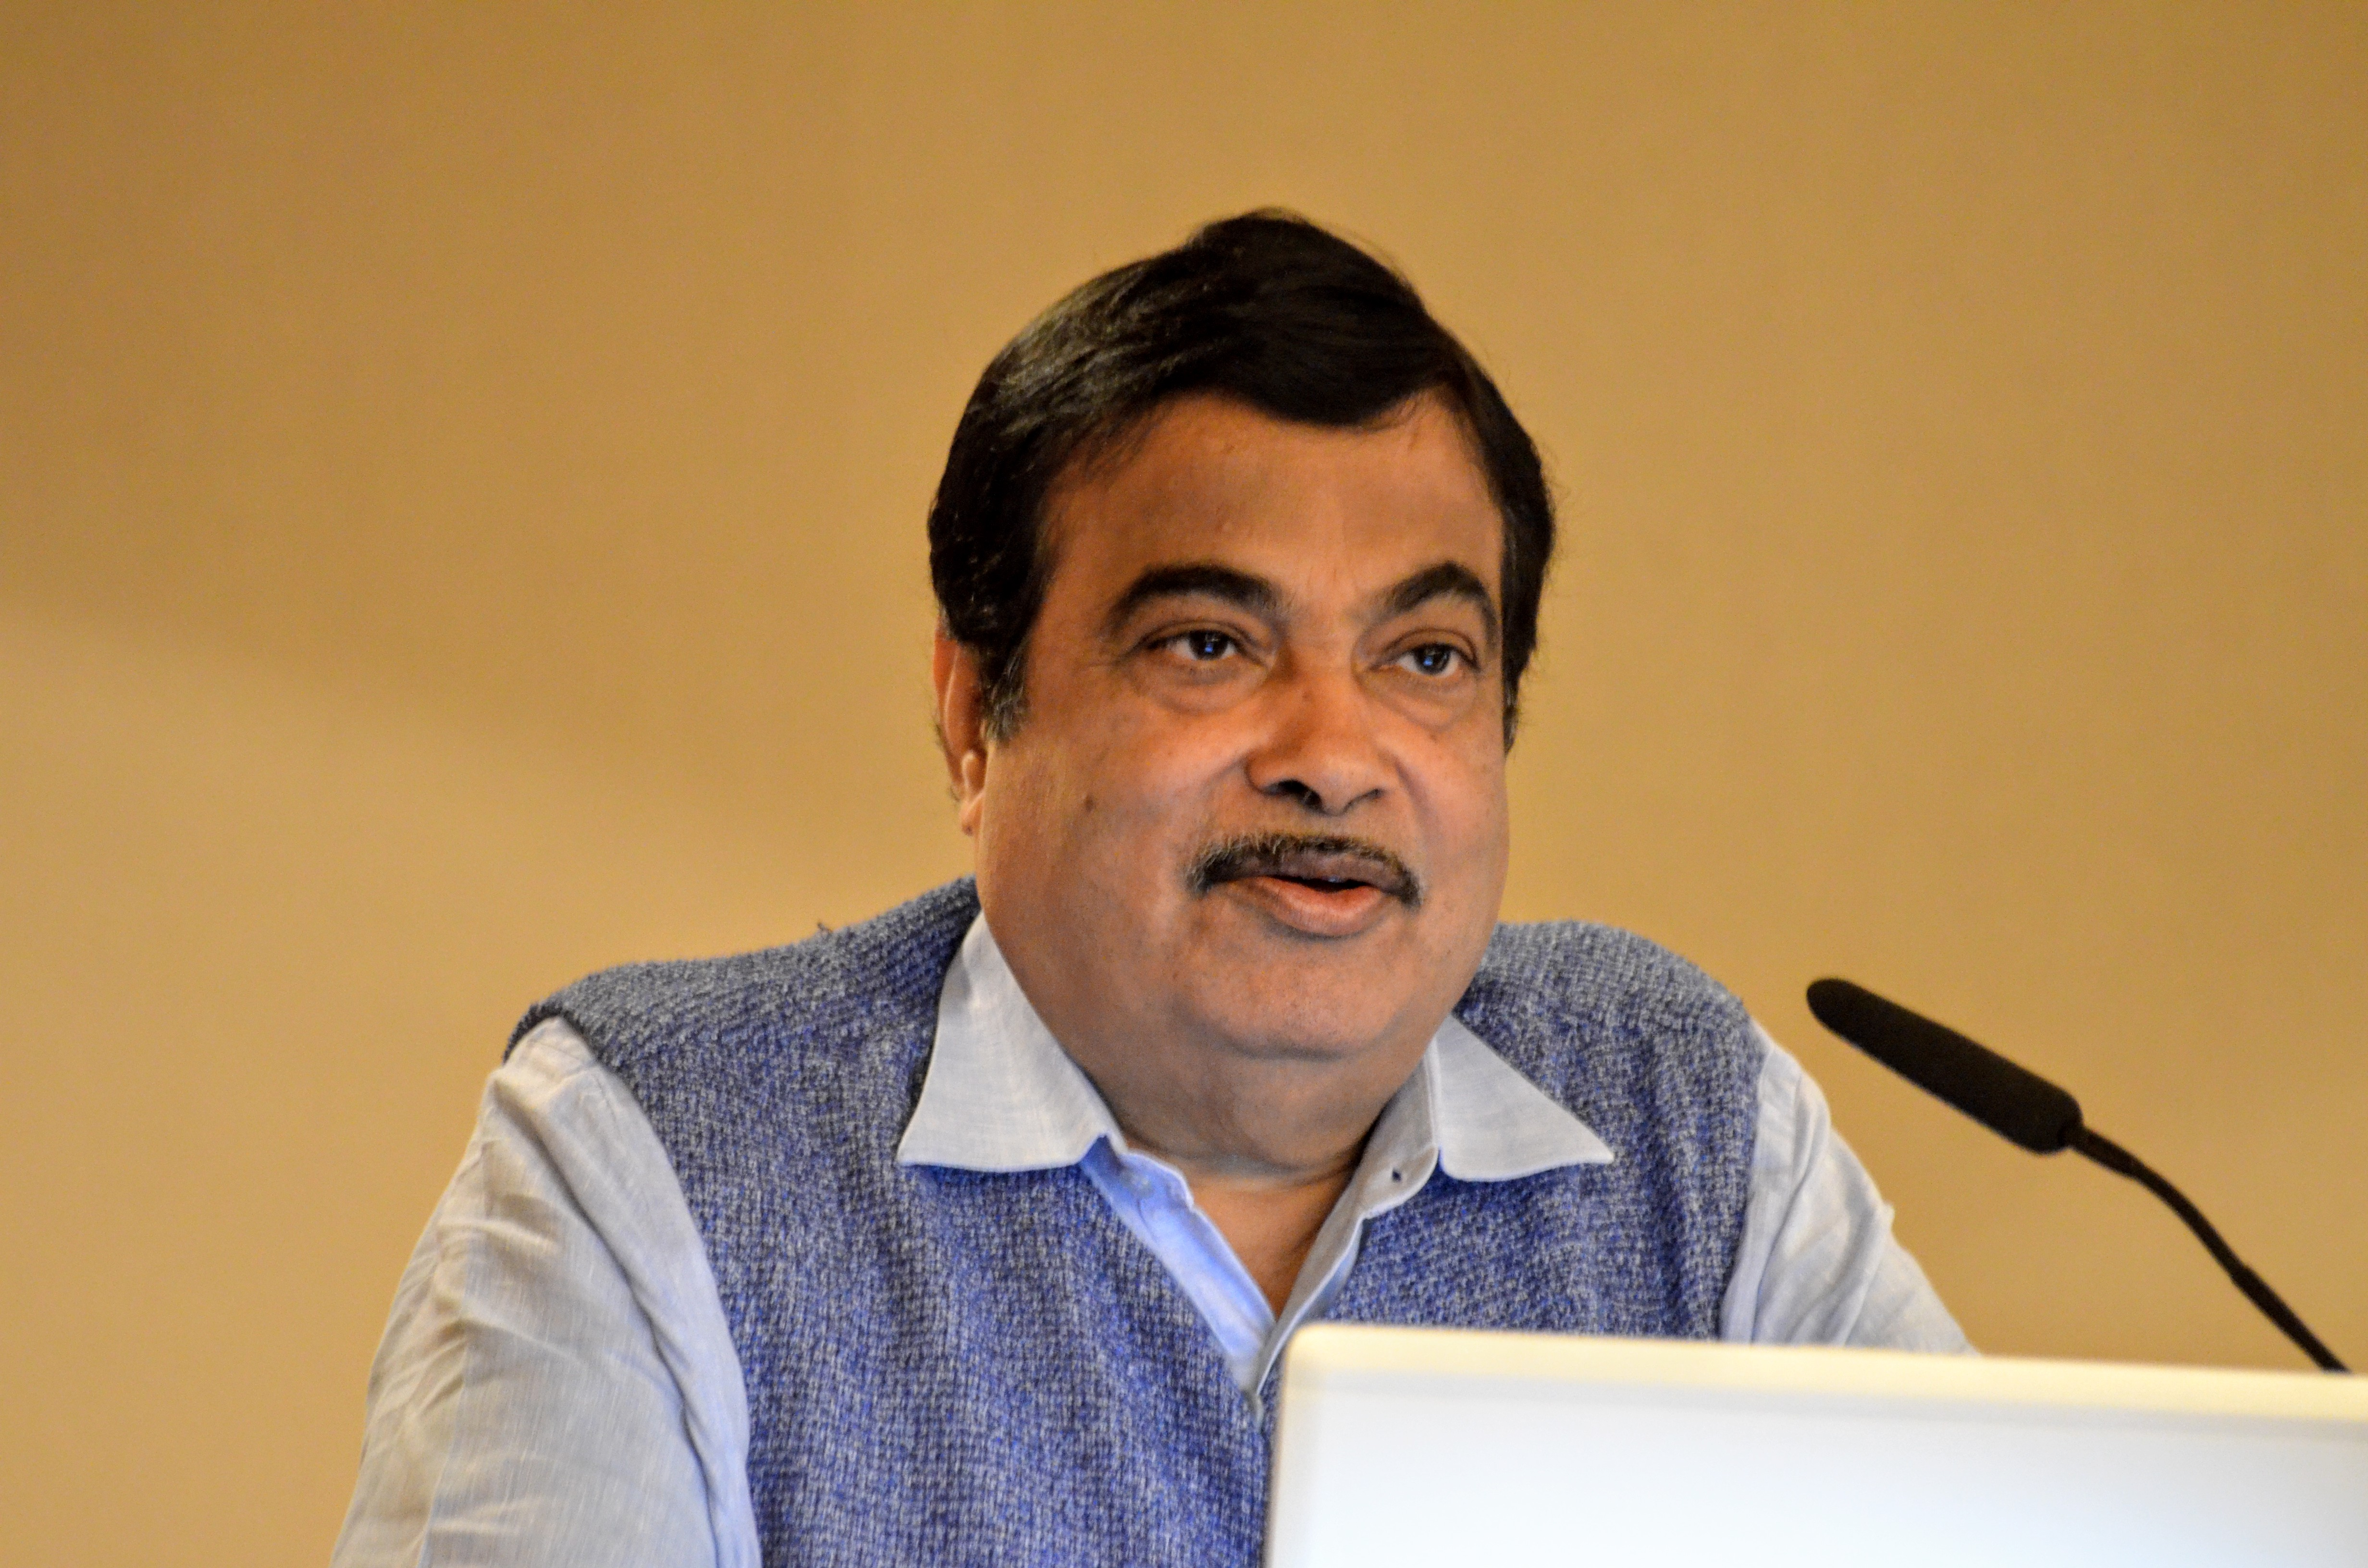 Nitin Gadkari, India's Minister of Road Transport & Highways and Minister of Shipping, Government of India Photo: Connected to India